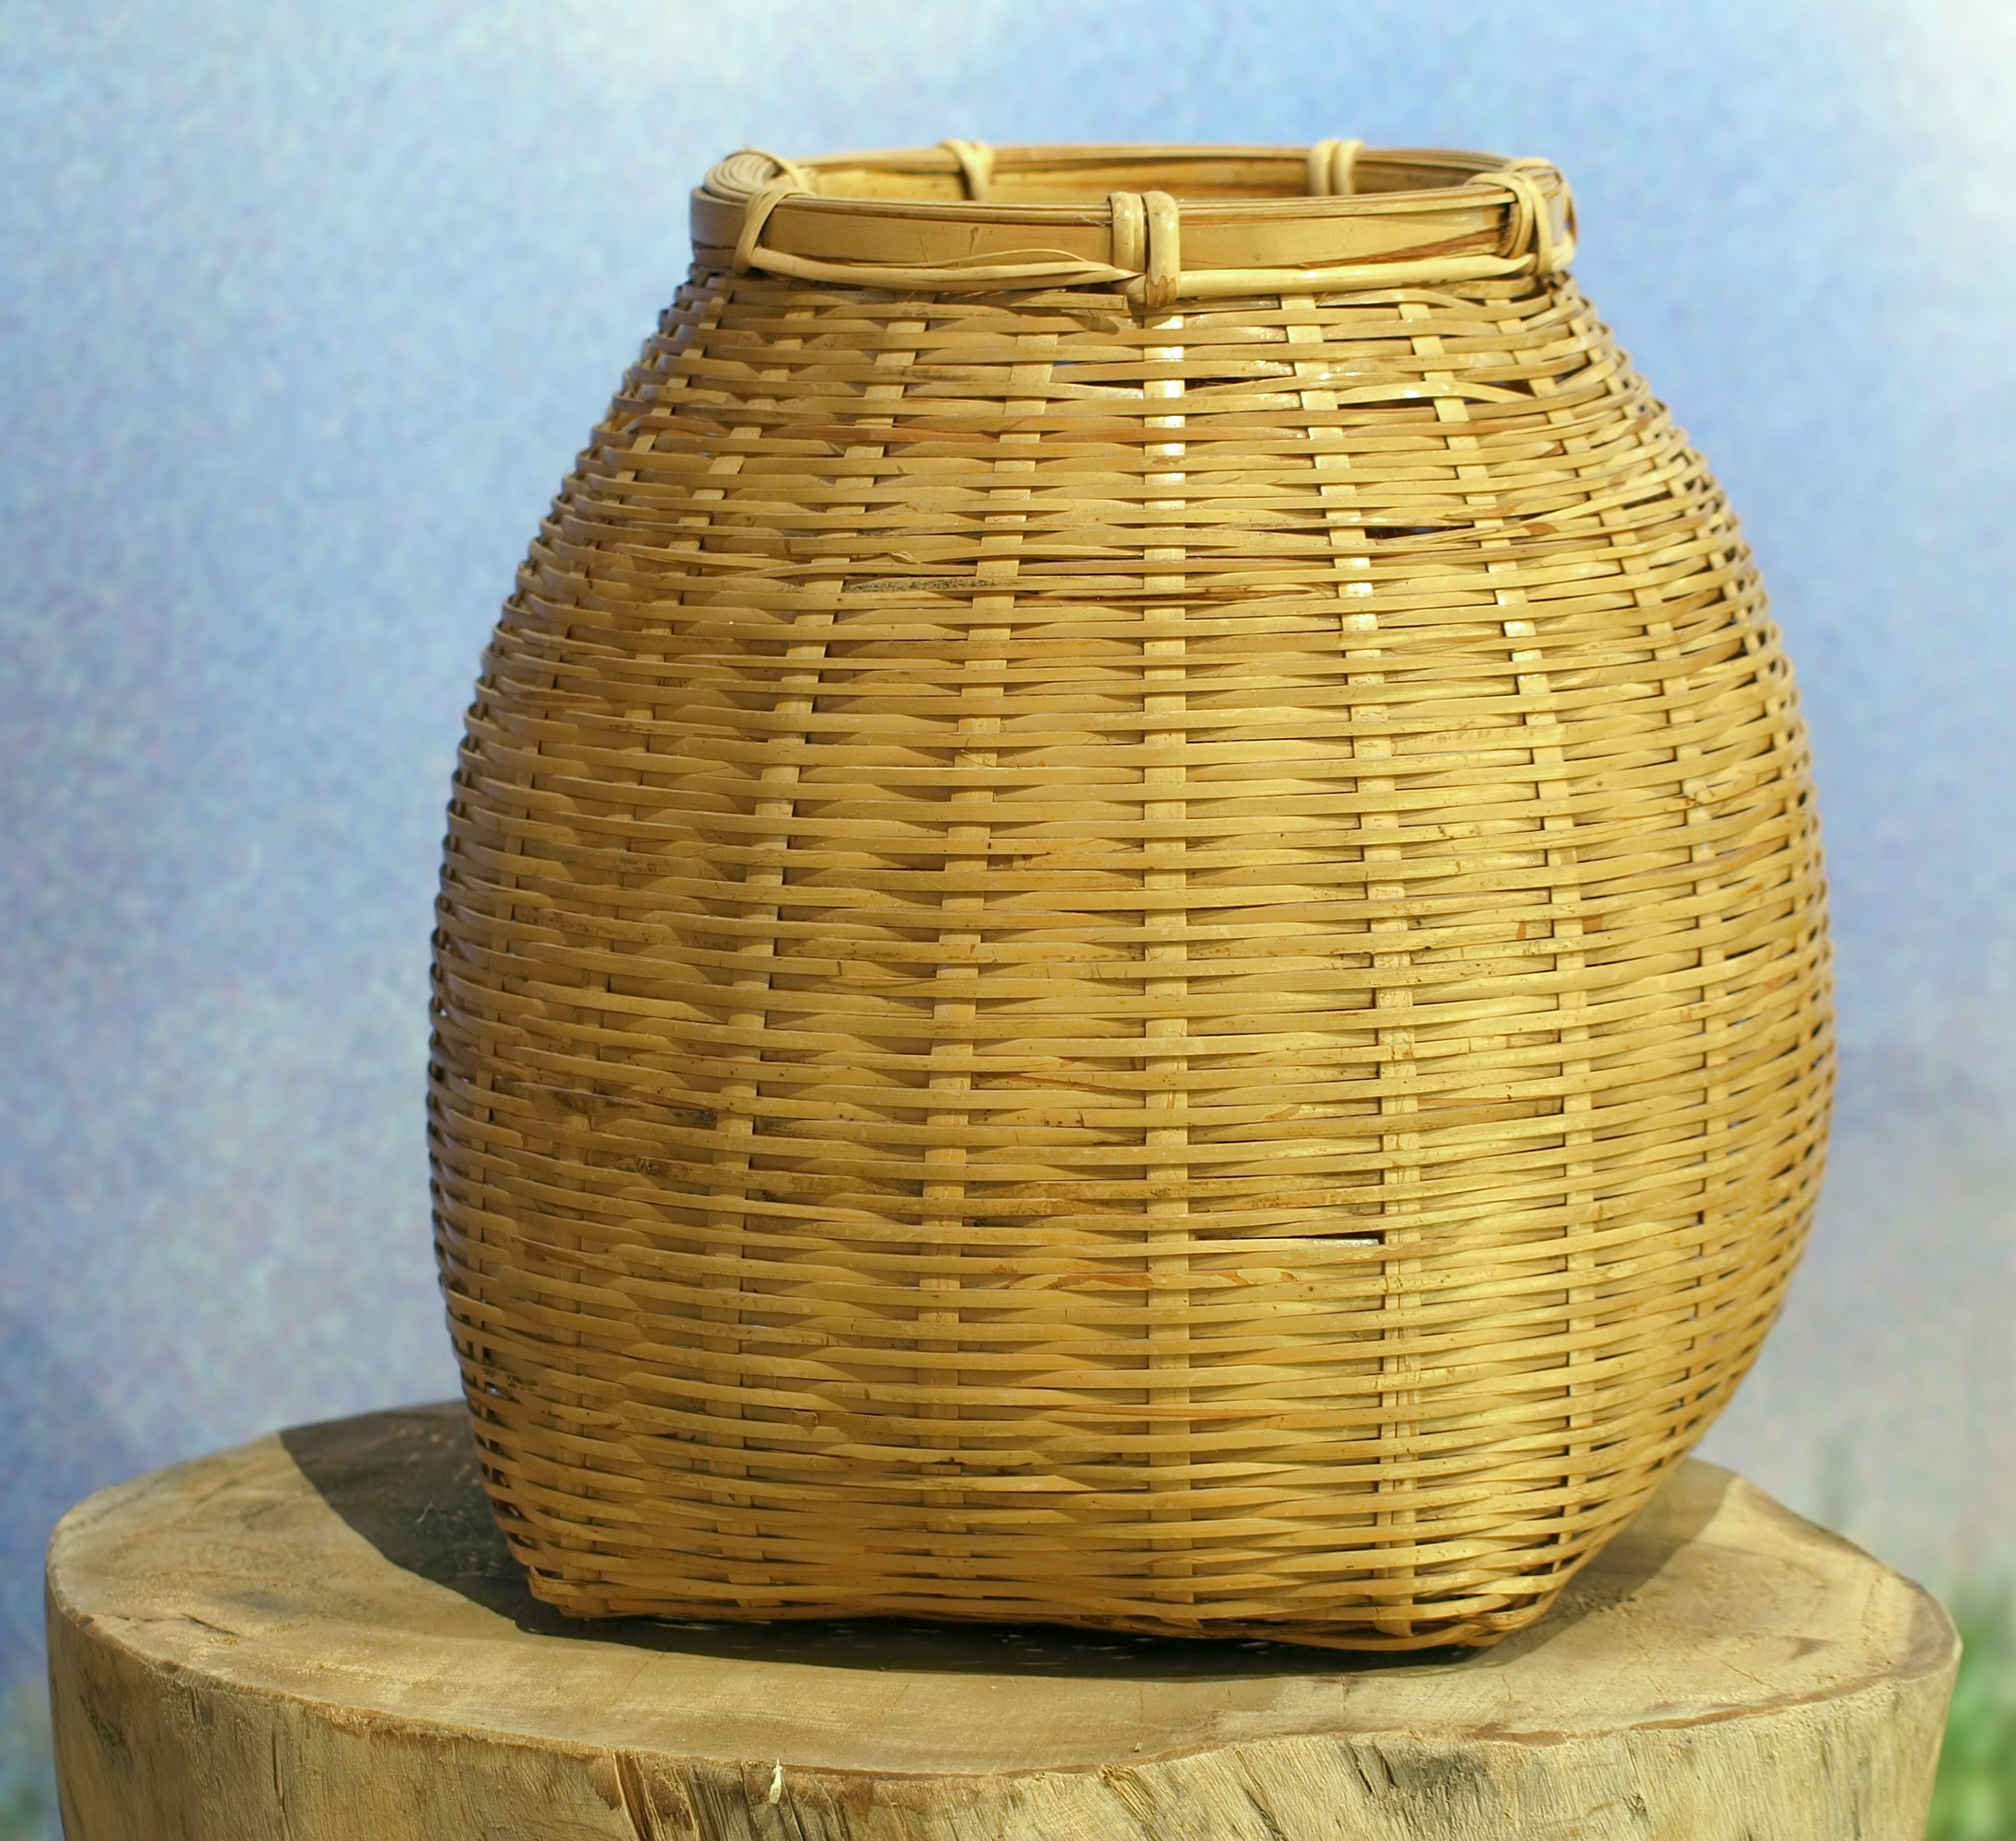 Basket, Container, Tree, Weaved, Woven, HQ Photo